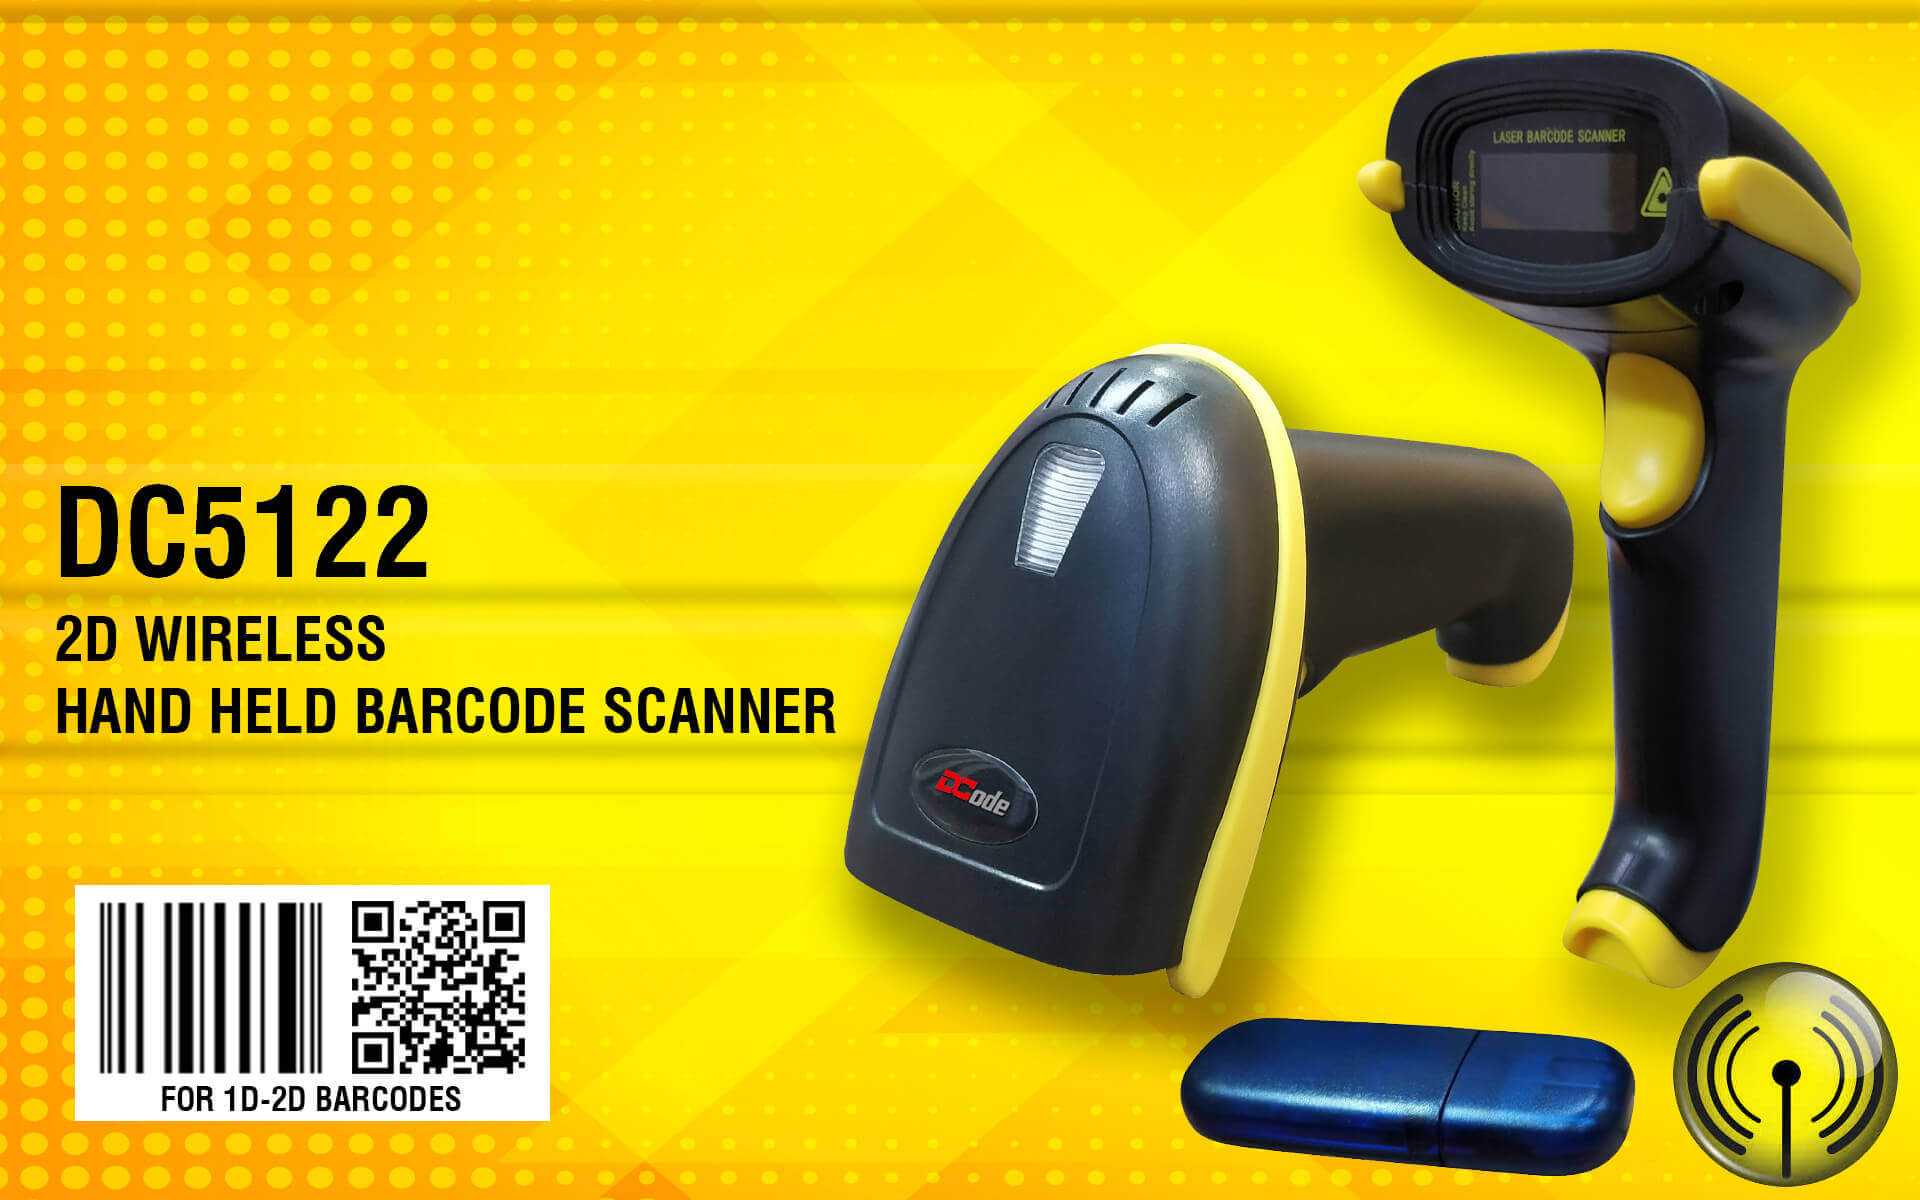 2 D Wireless Hand Held Barcode scanner